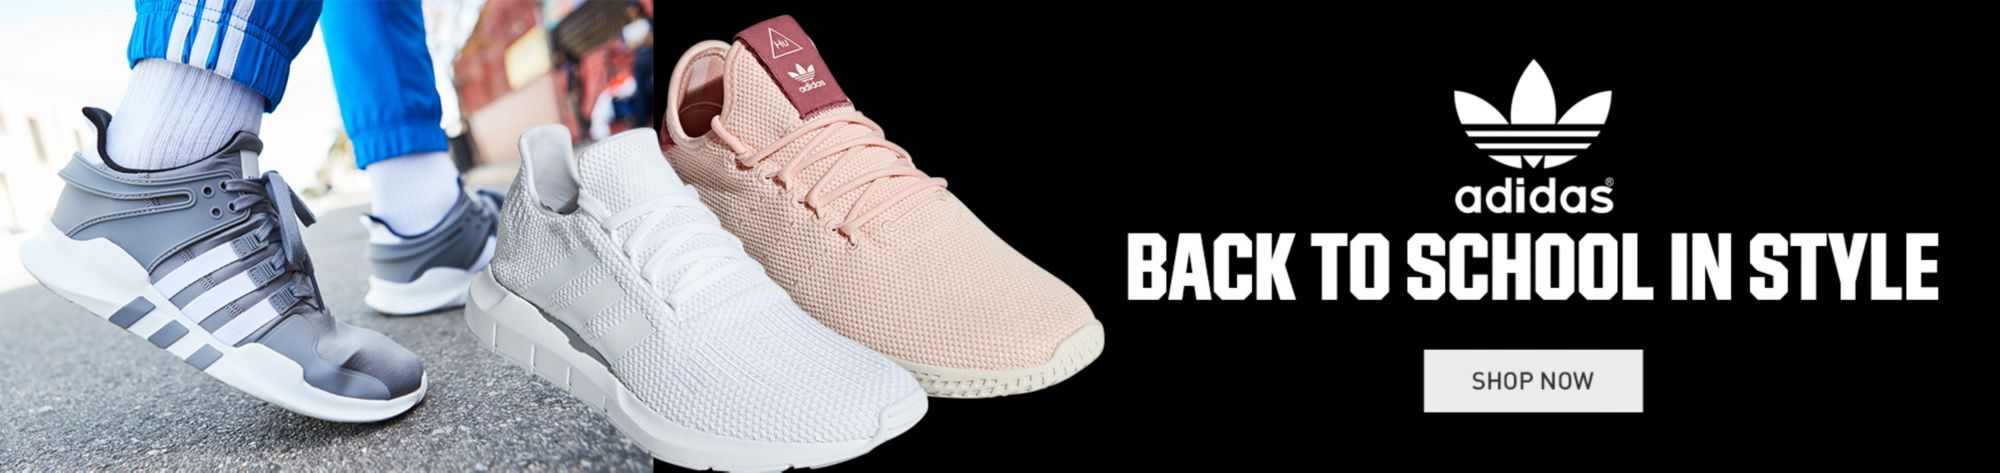 adidas Back to School Styles - Shop Now